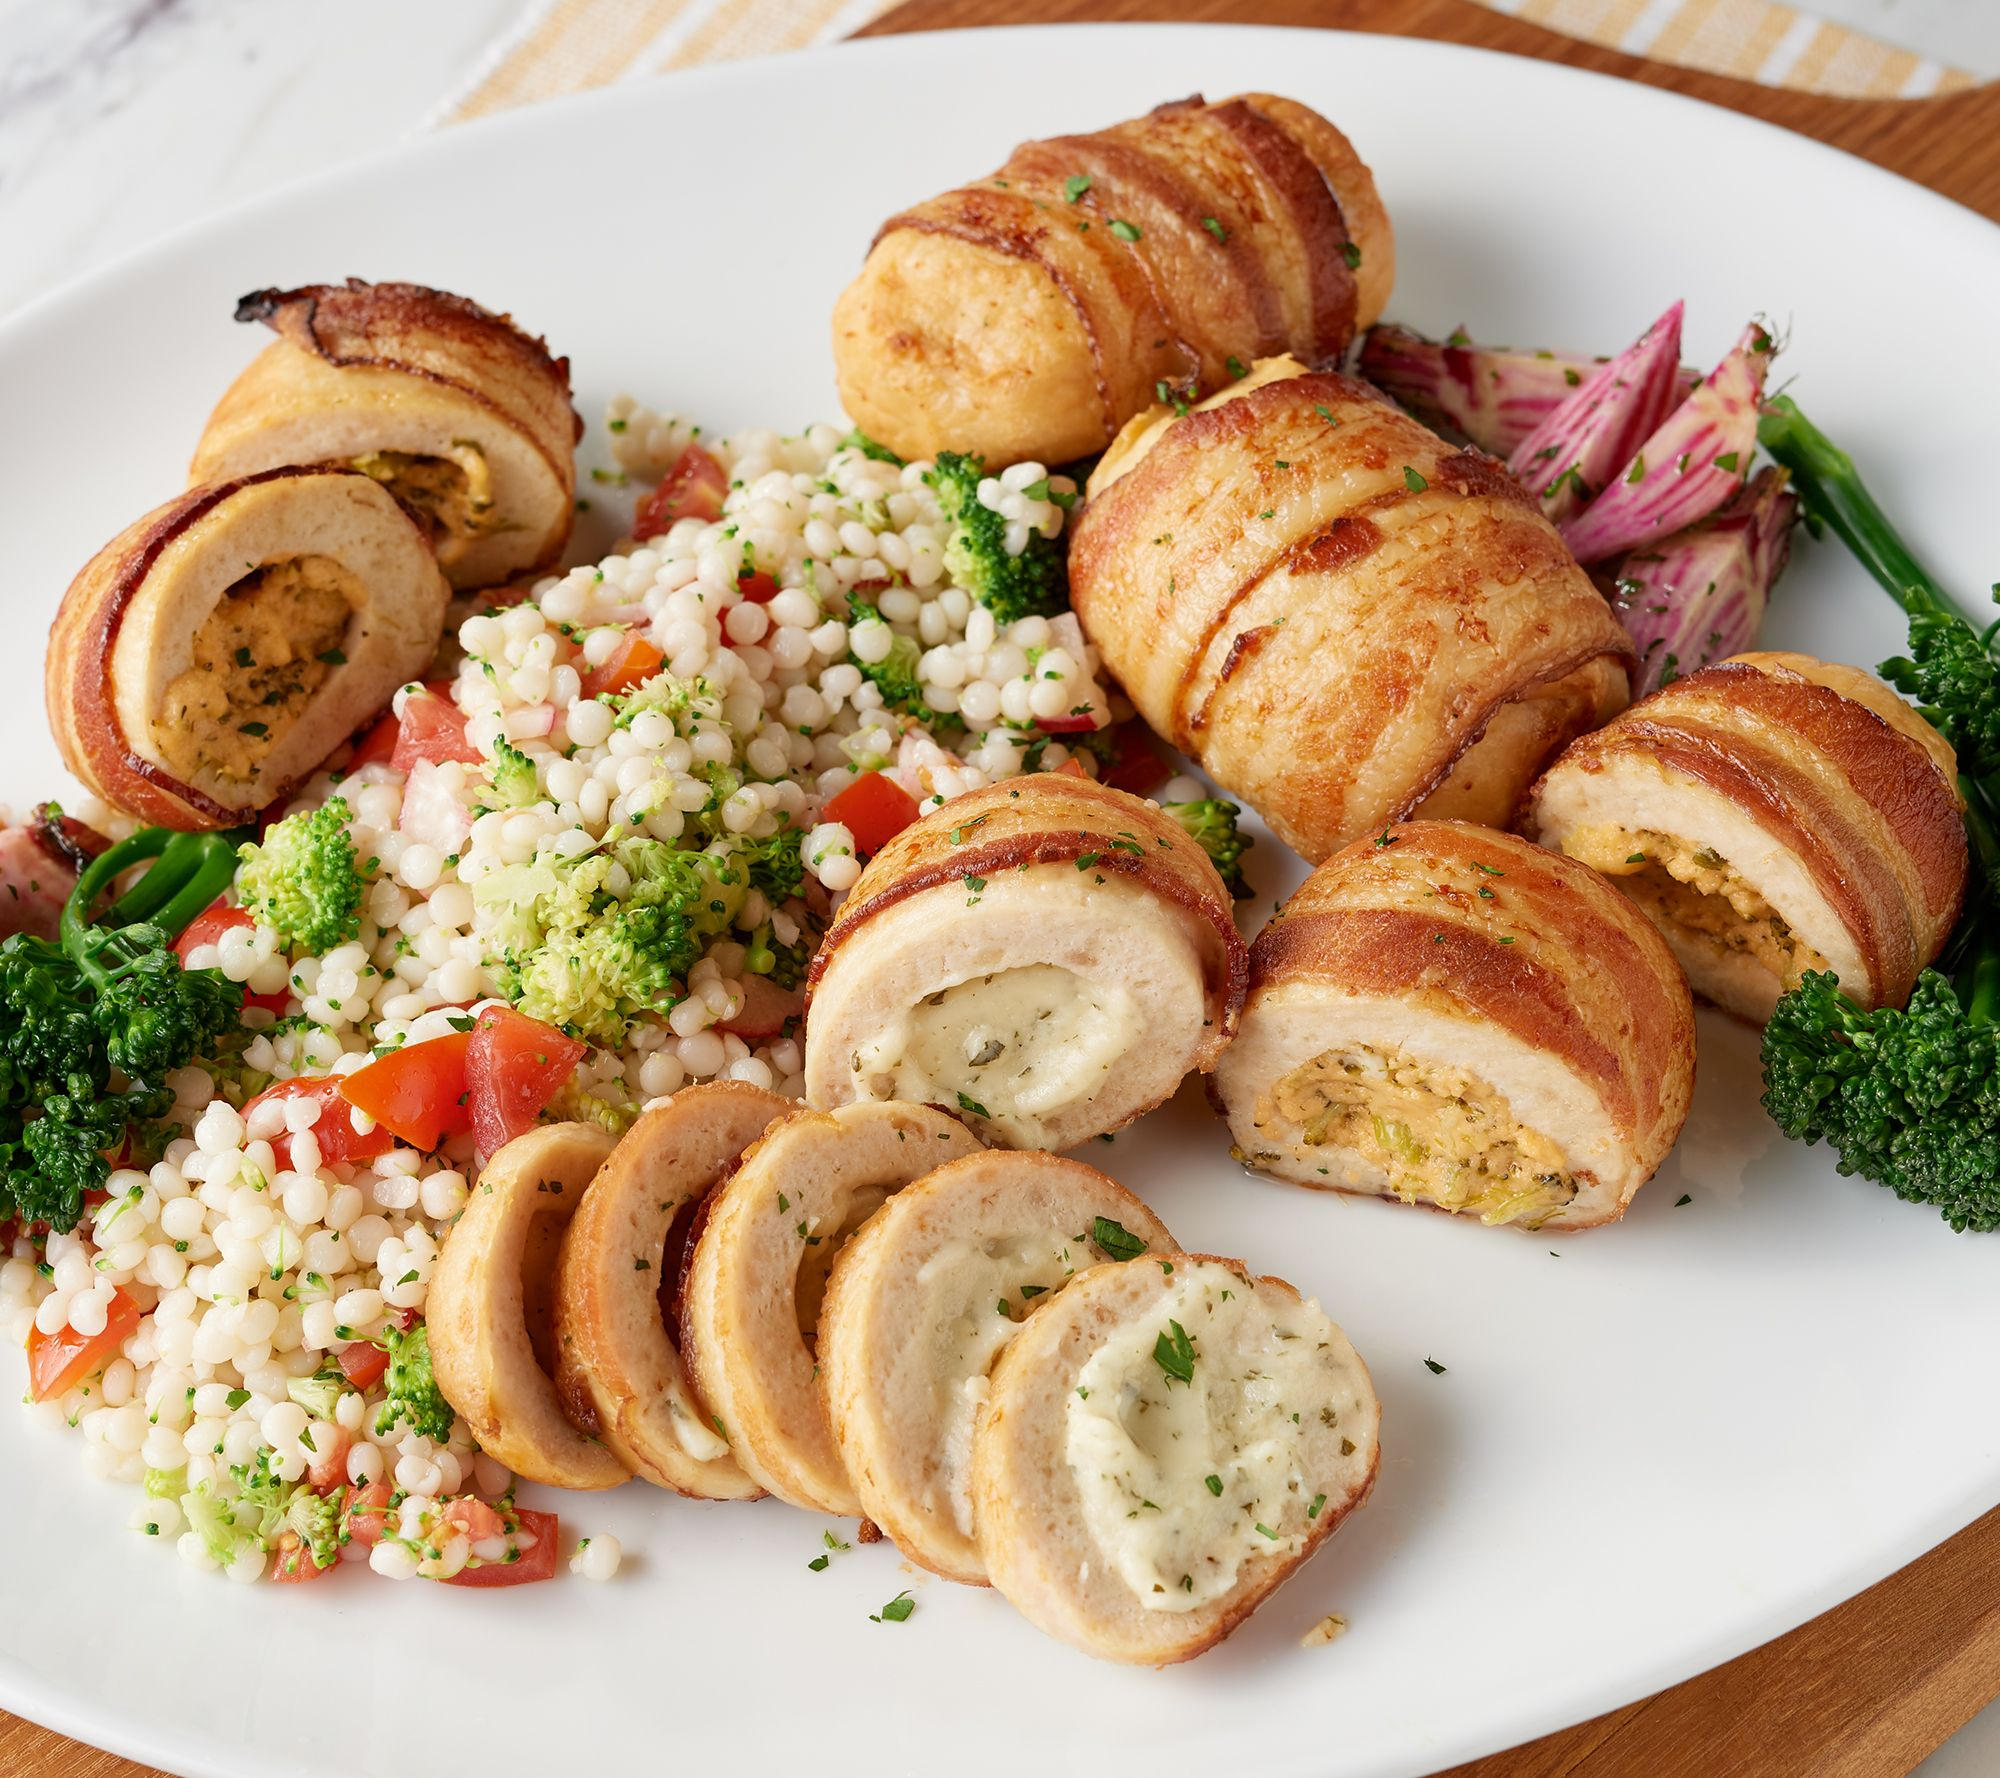 Real Good Foods 8 6 Oz Bacon Wrapped Stuffed Chicken Qvc Com